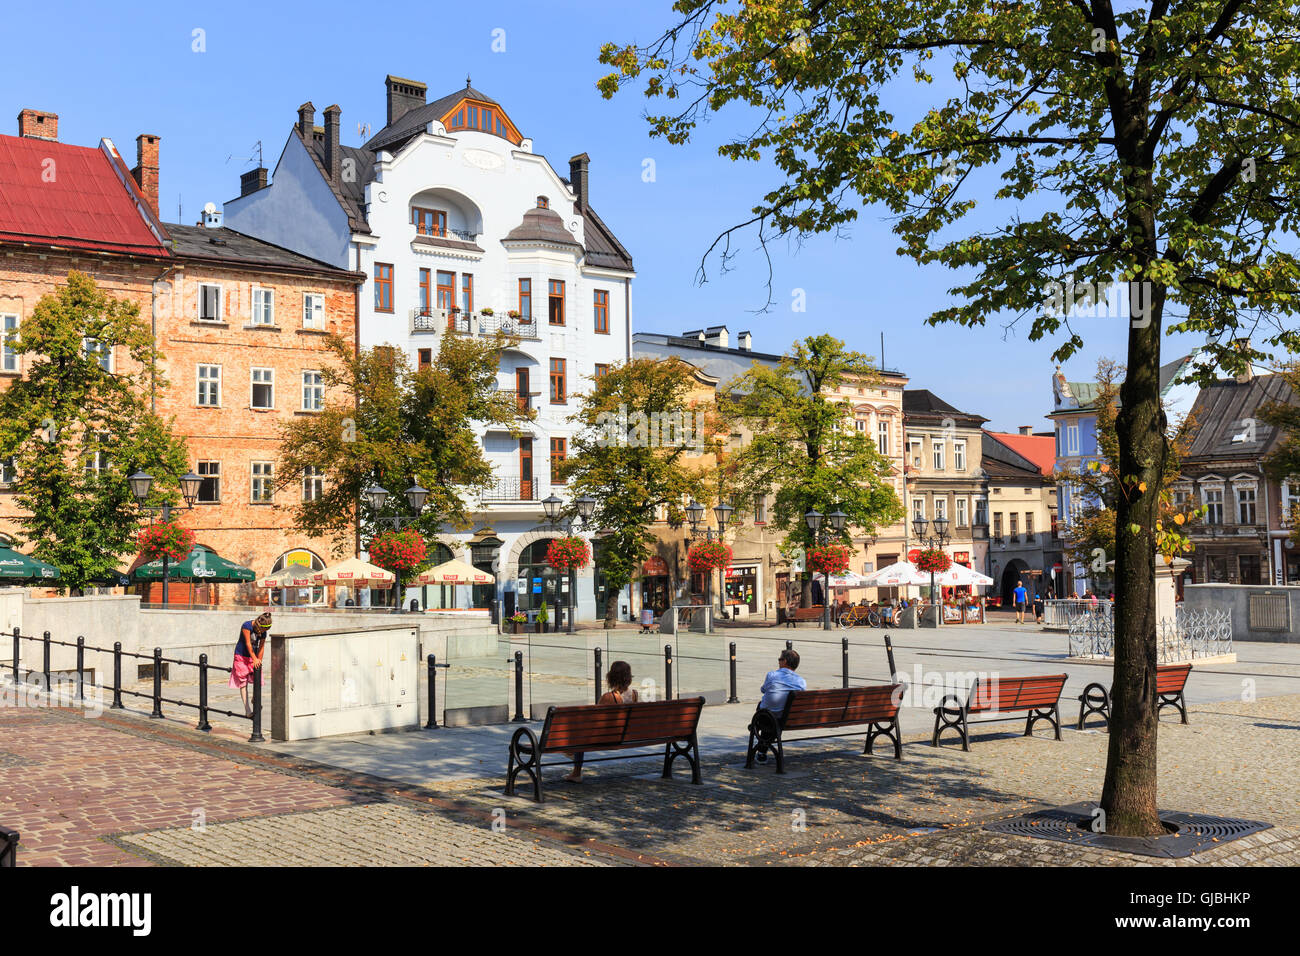 Bielsko Biala, Poland - September 07, 2014: View of the historical part of Bielsko Biala in the summer, sunny day - Stock Image